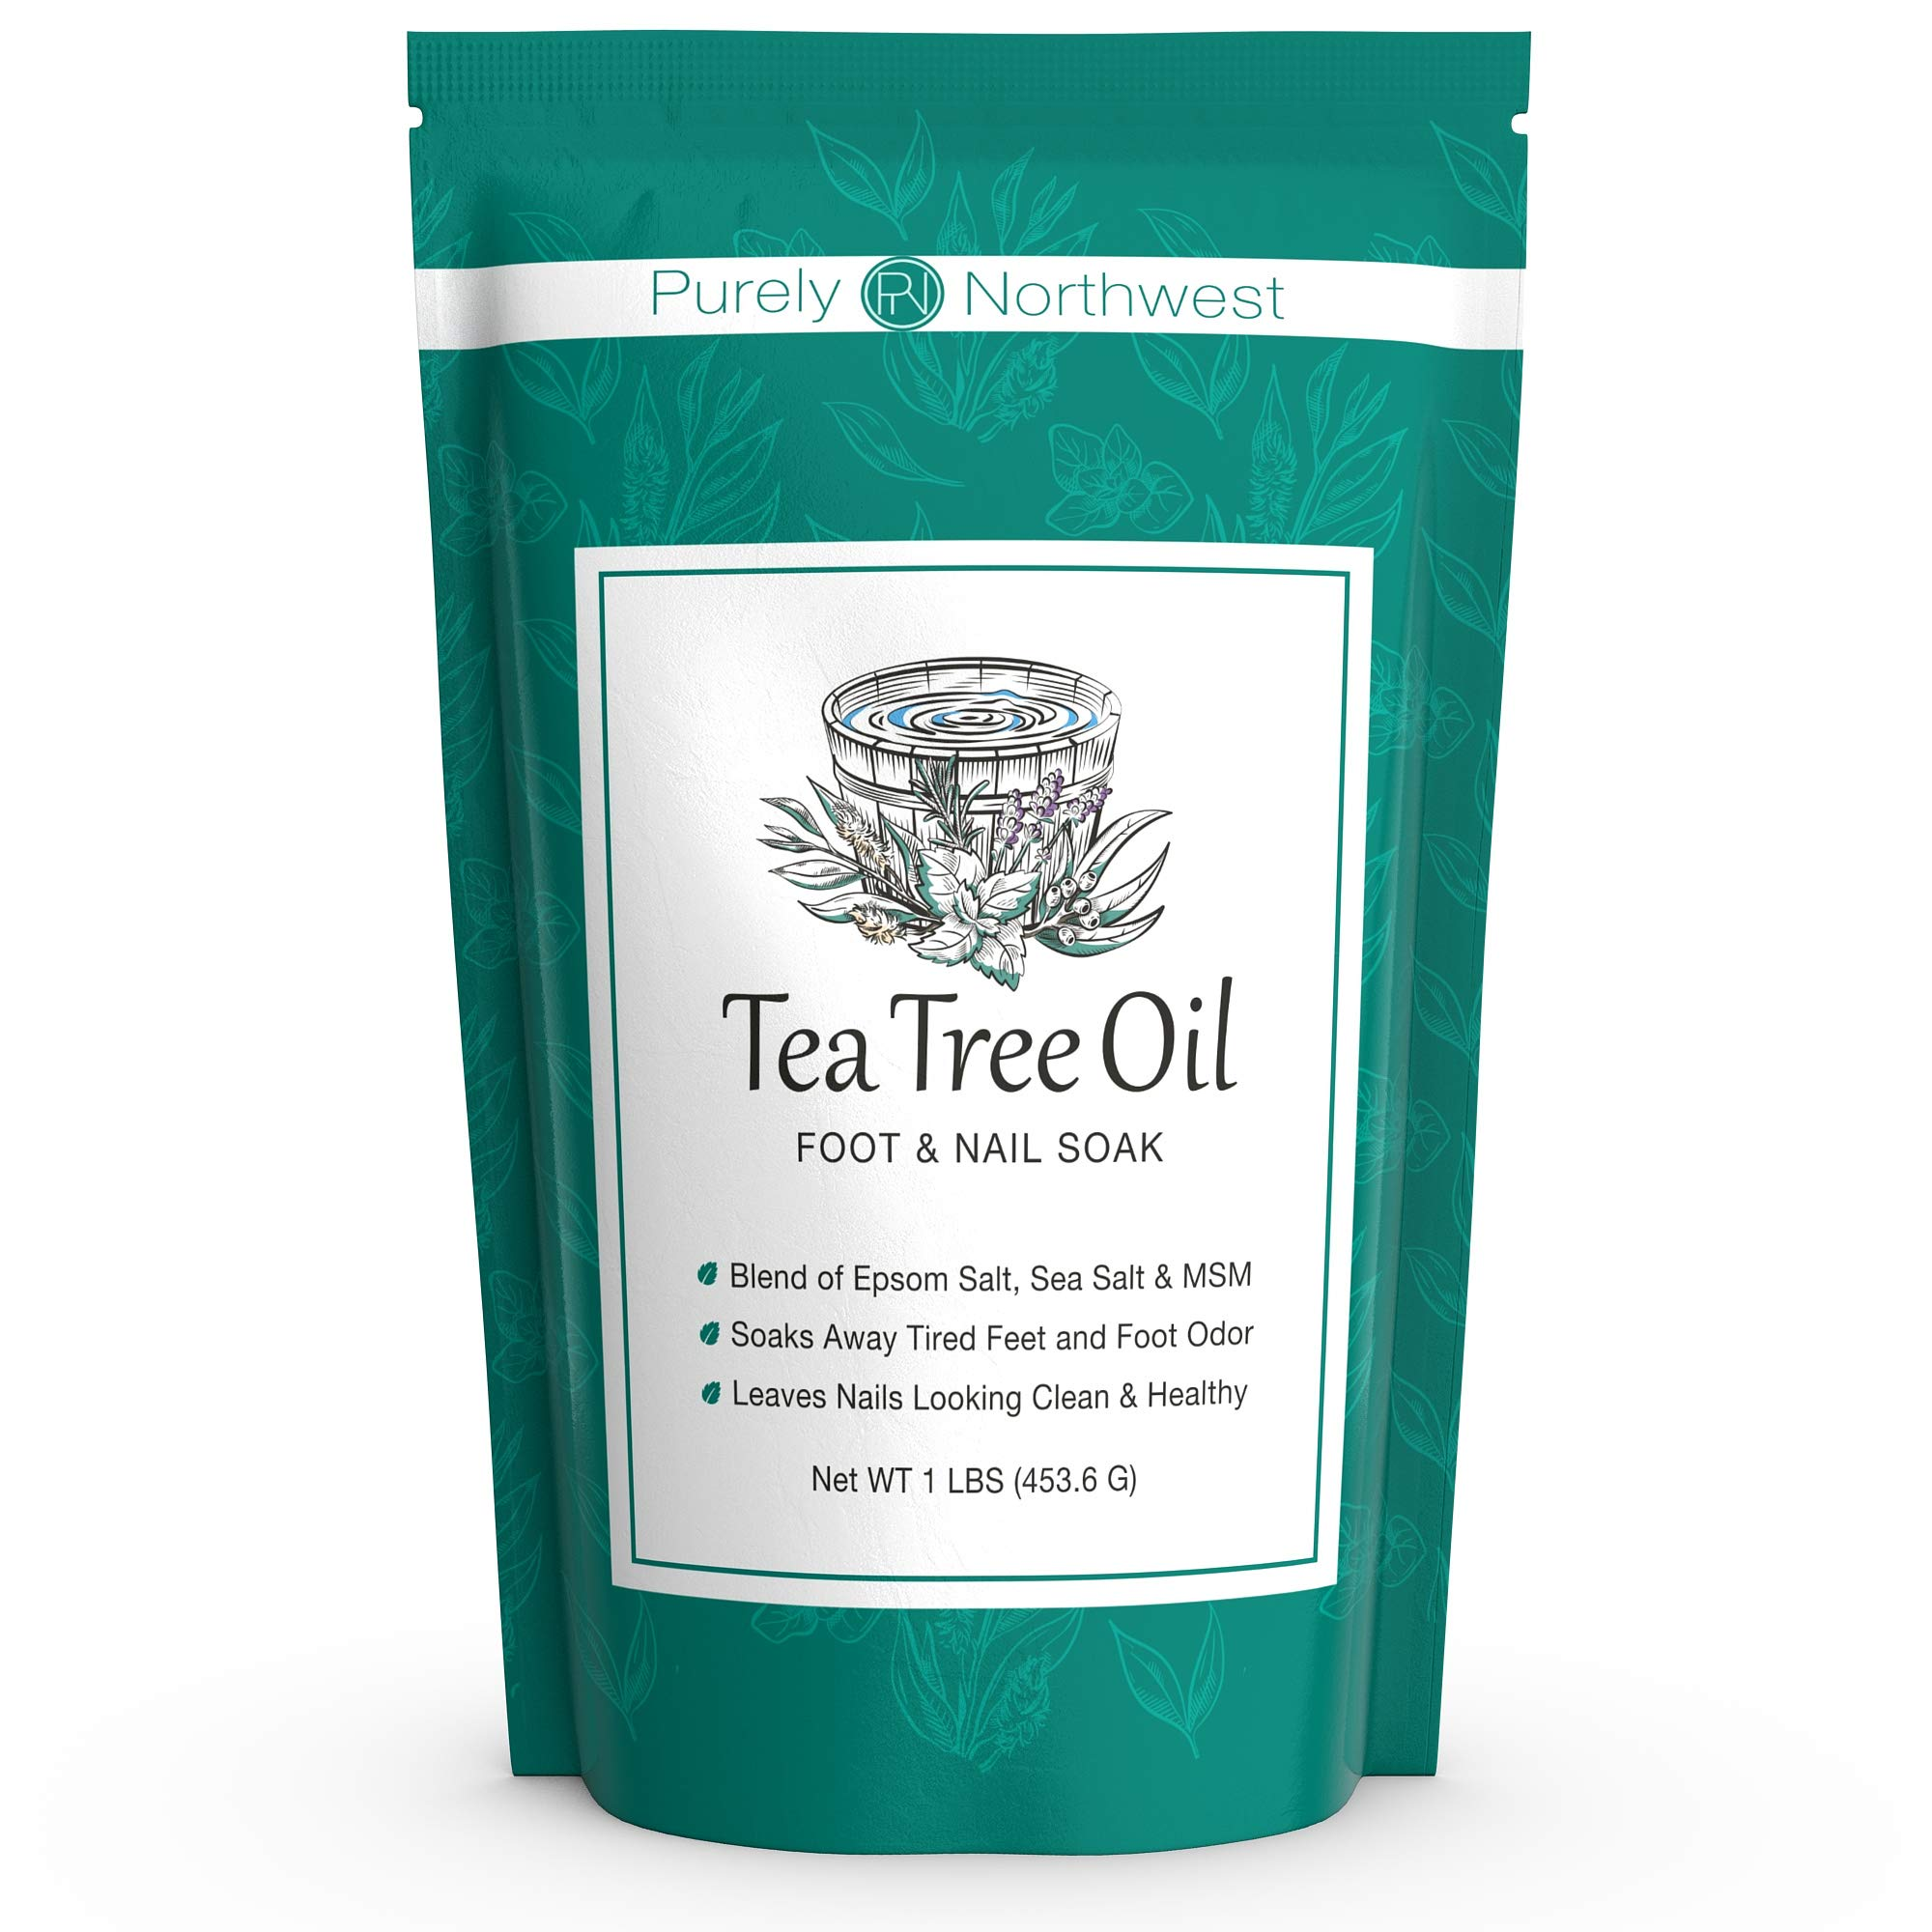 Tea Tree Oil Foot Soak with Epsom Salt - Made in USA, Alleviate Toenail Fungus, Athlete's Foot and Stinky Foot Odors. Softens Dry Calloused Heels, Leaving Feet Feeling Soft, Clean and Healthy -16oz by Purely Northwest